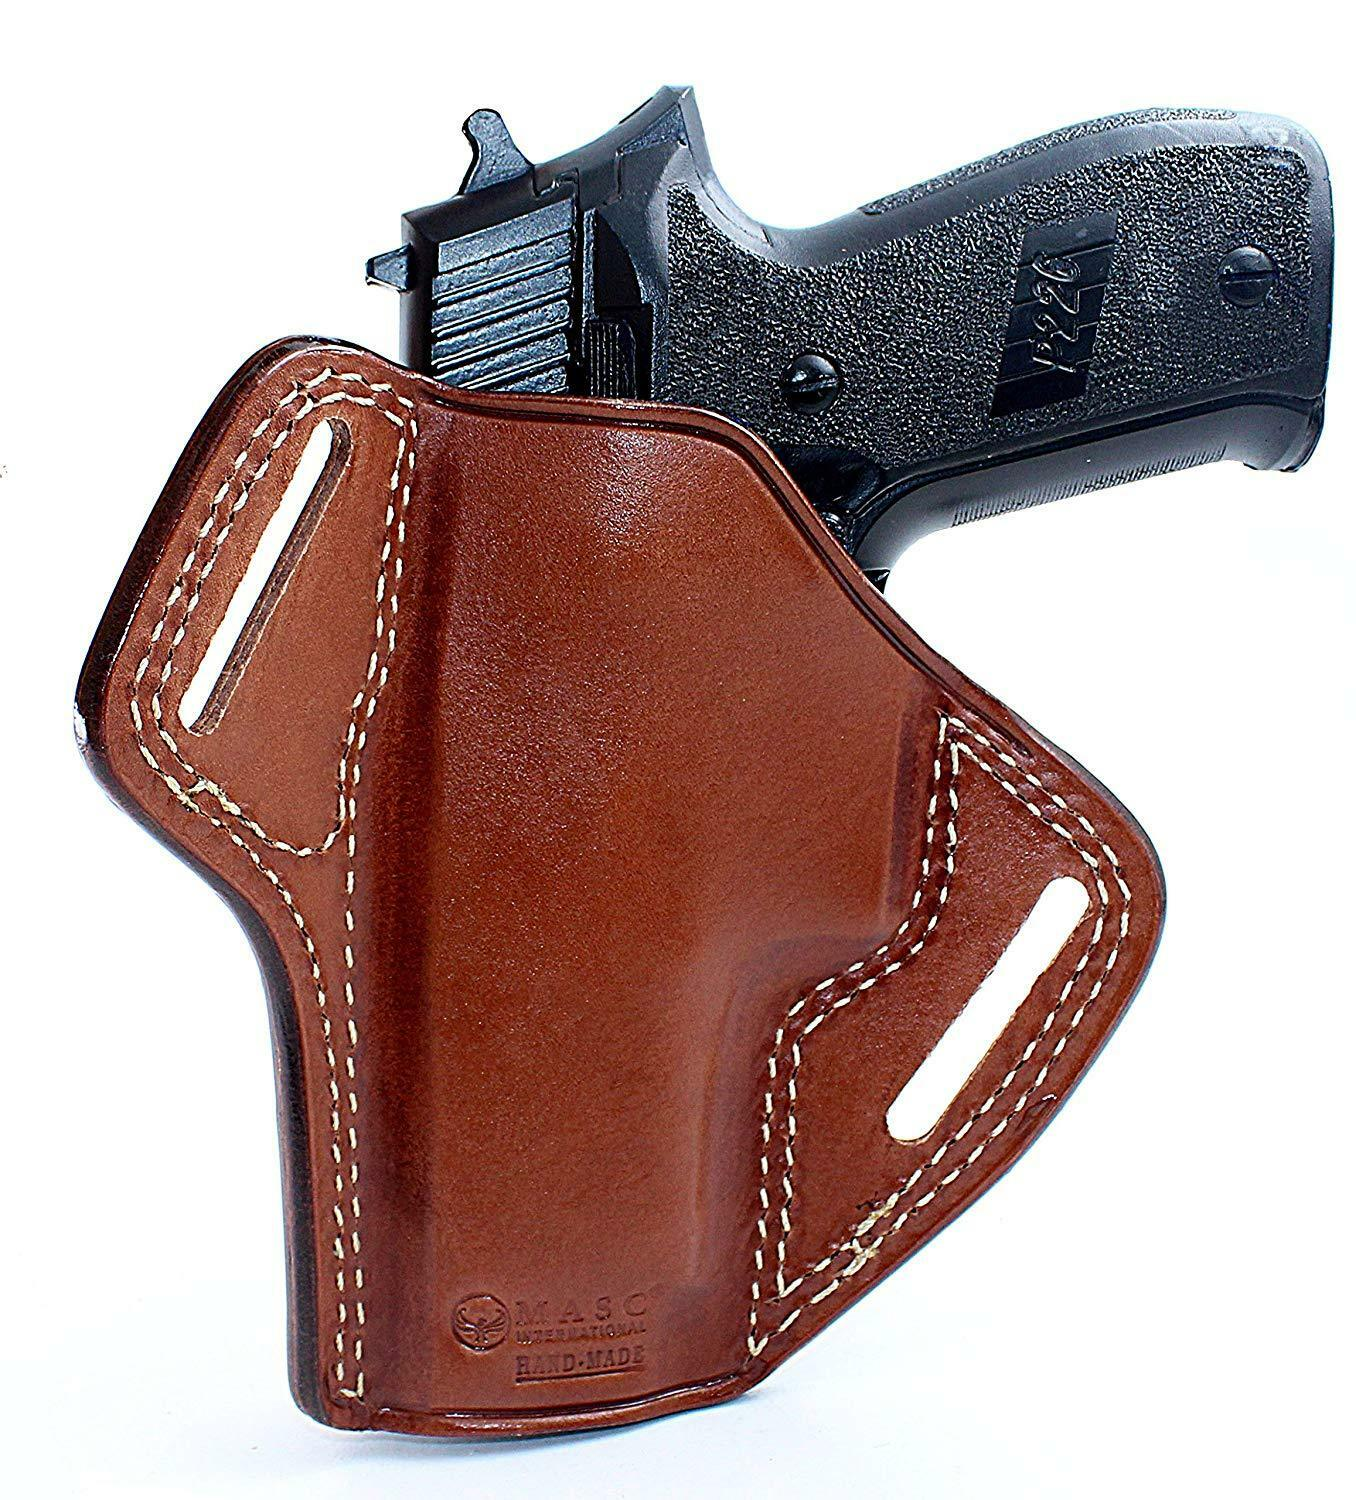 Leder Pancake Holster Fits Sig P220 45 ACP With Rail 1326 4.4'' Barrel  1326 Rail  1d0337